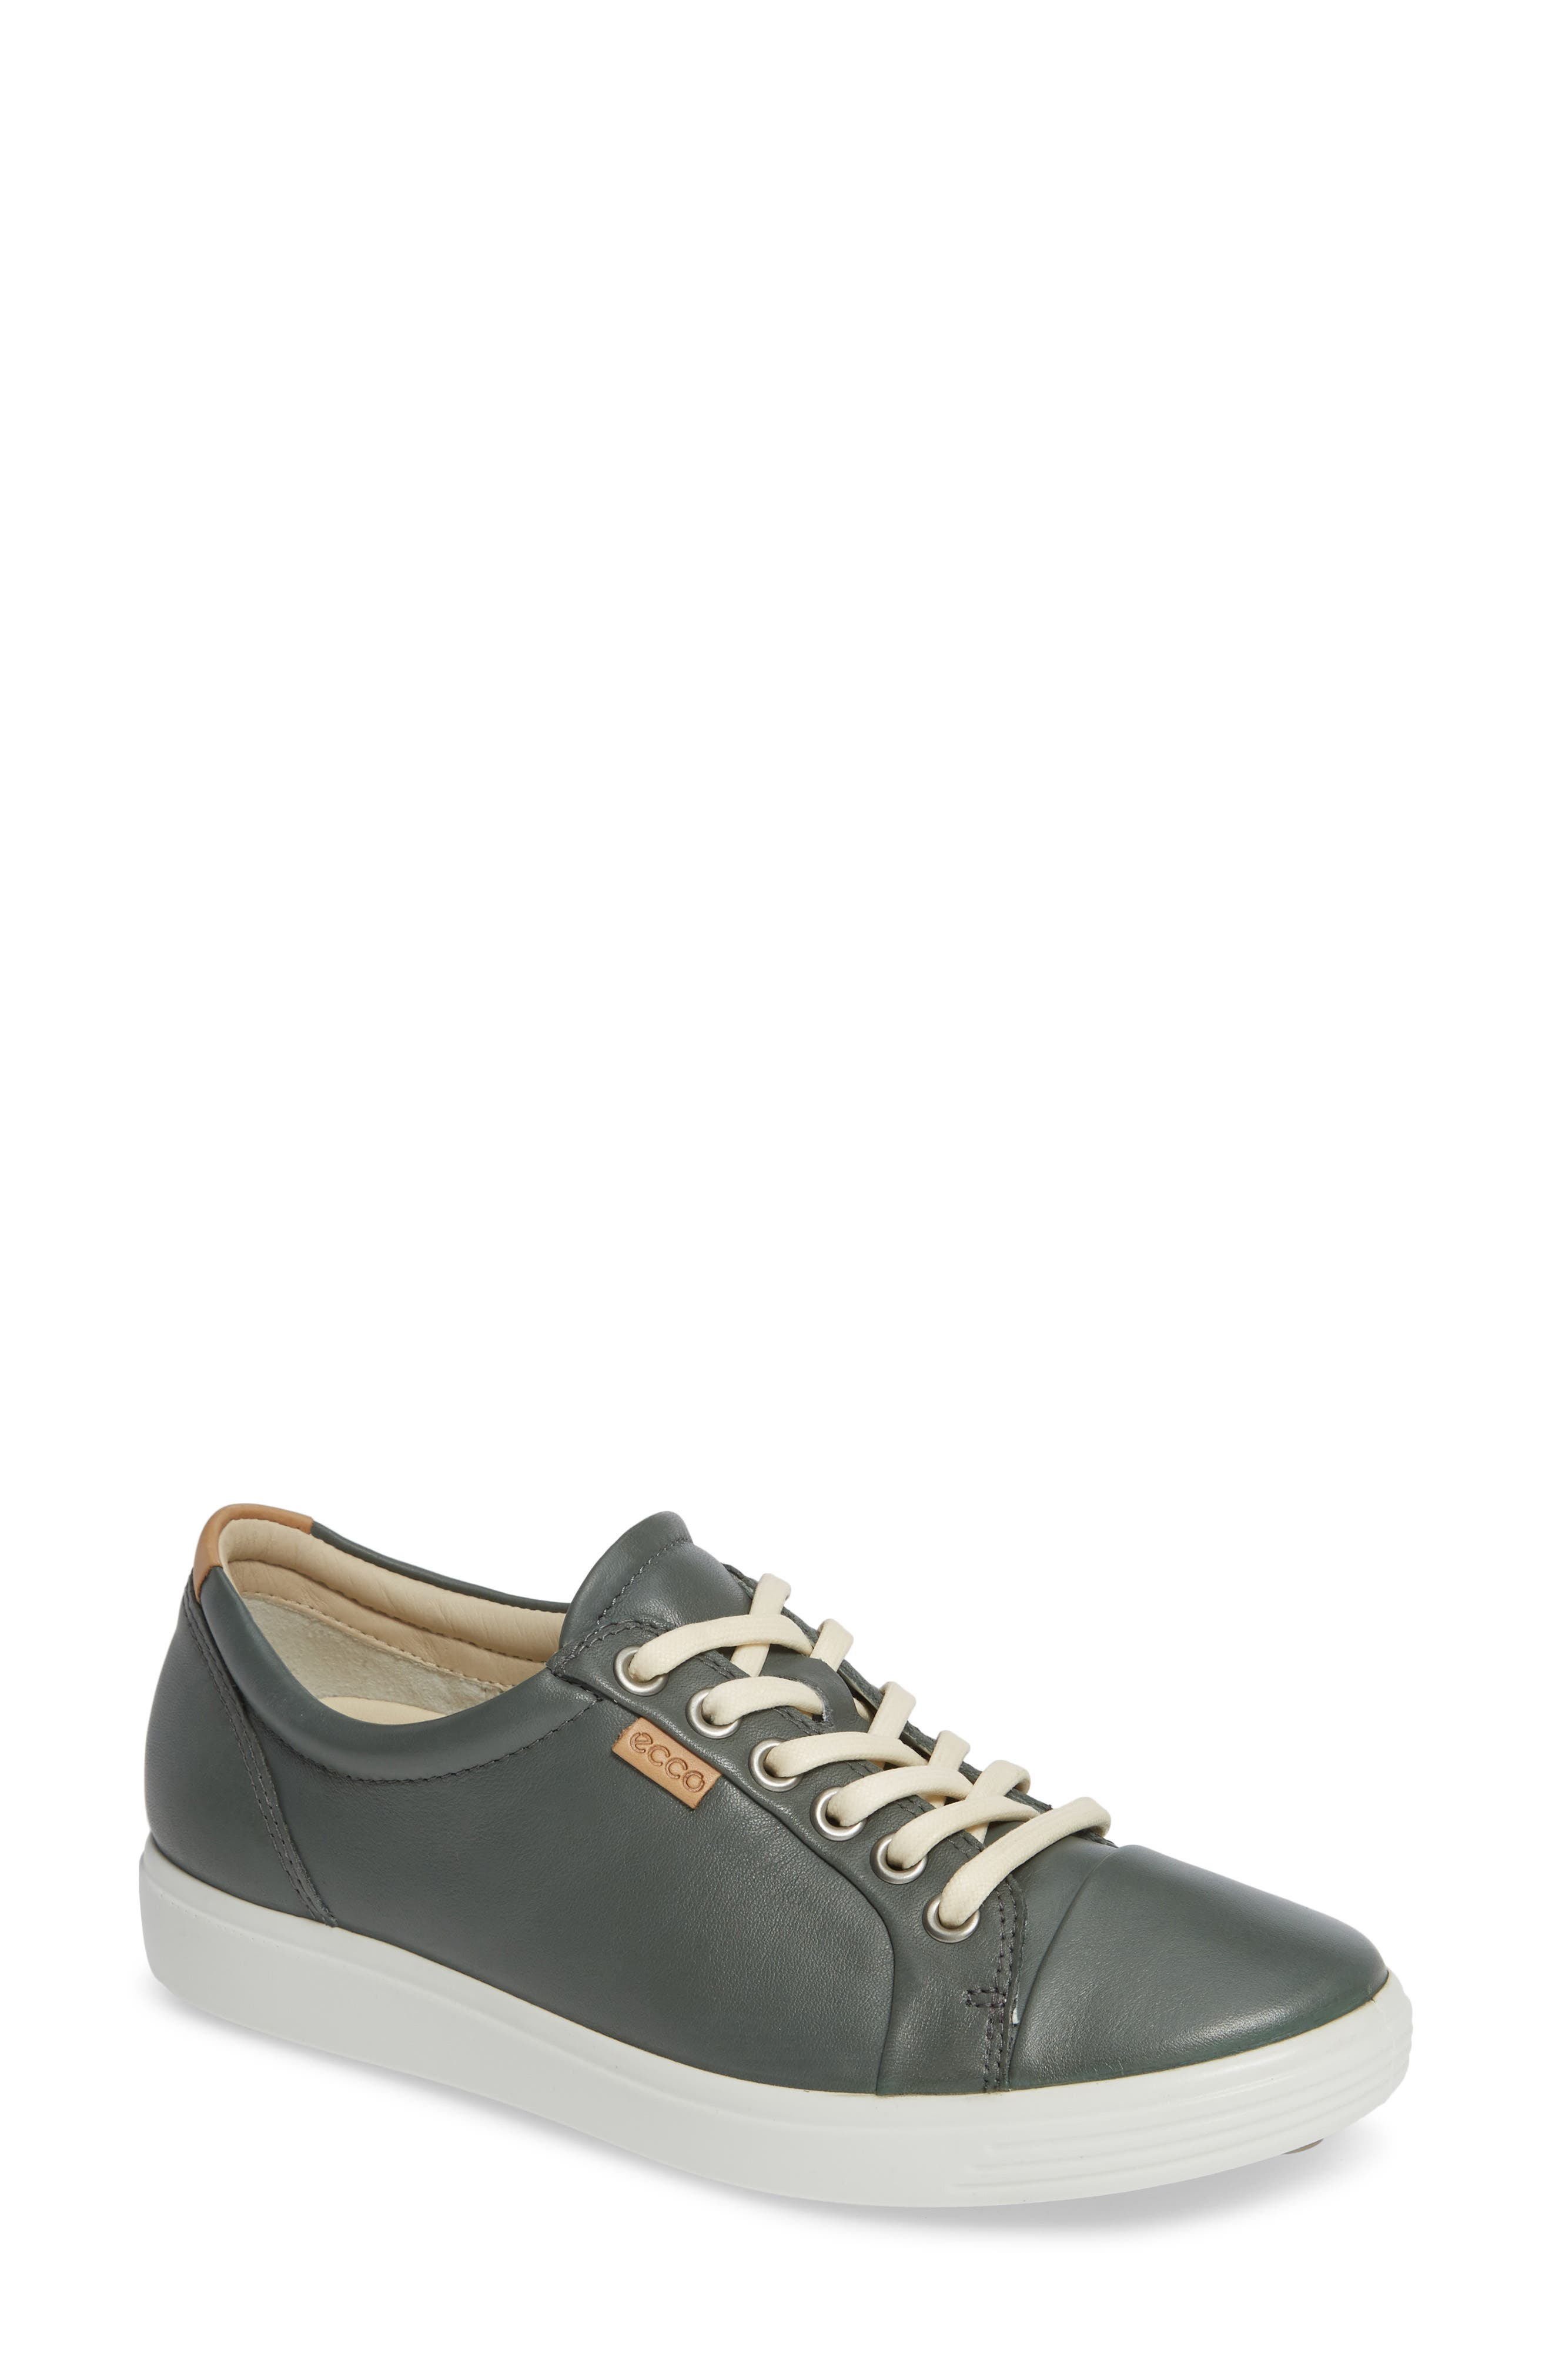 Soft 7 Sneaker,                             Main thumbnail 1, color,                             MOON LEATHER